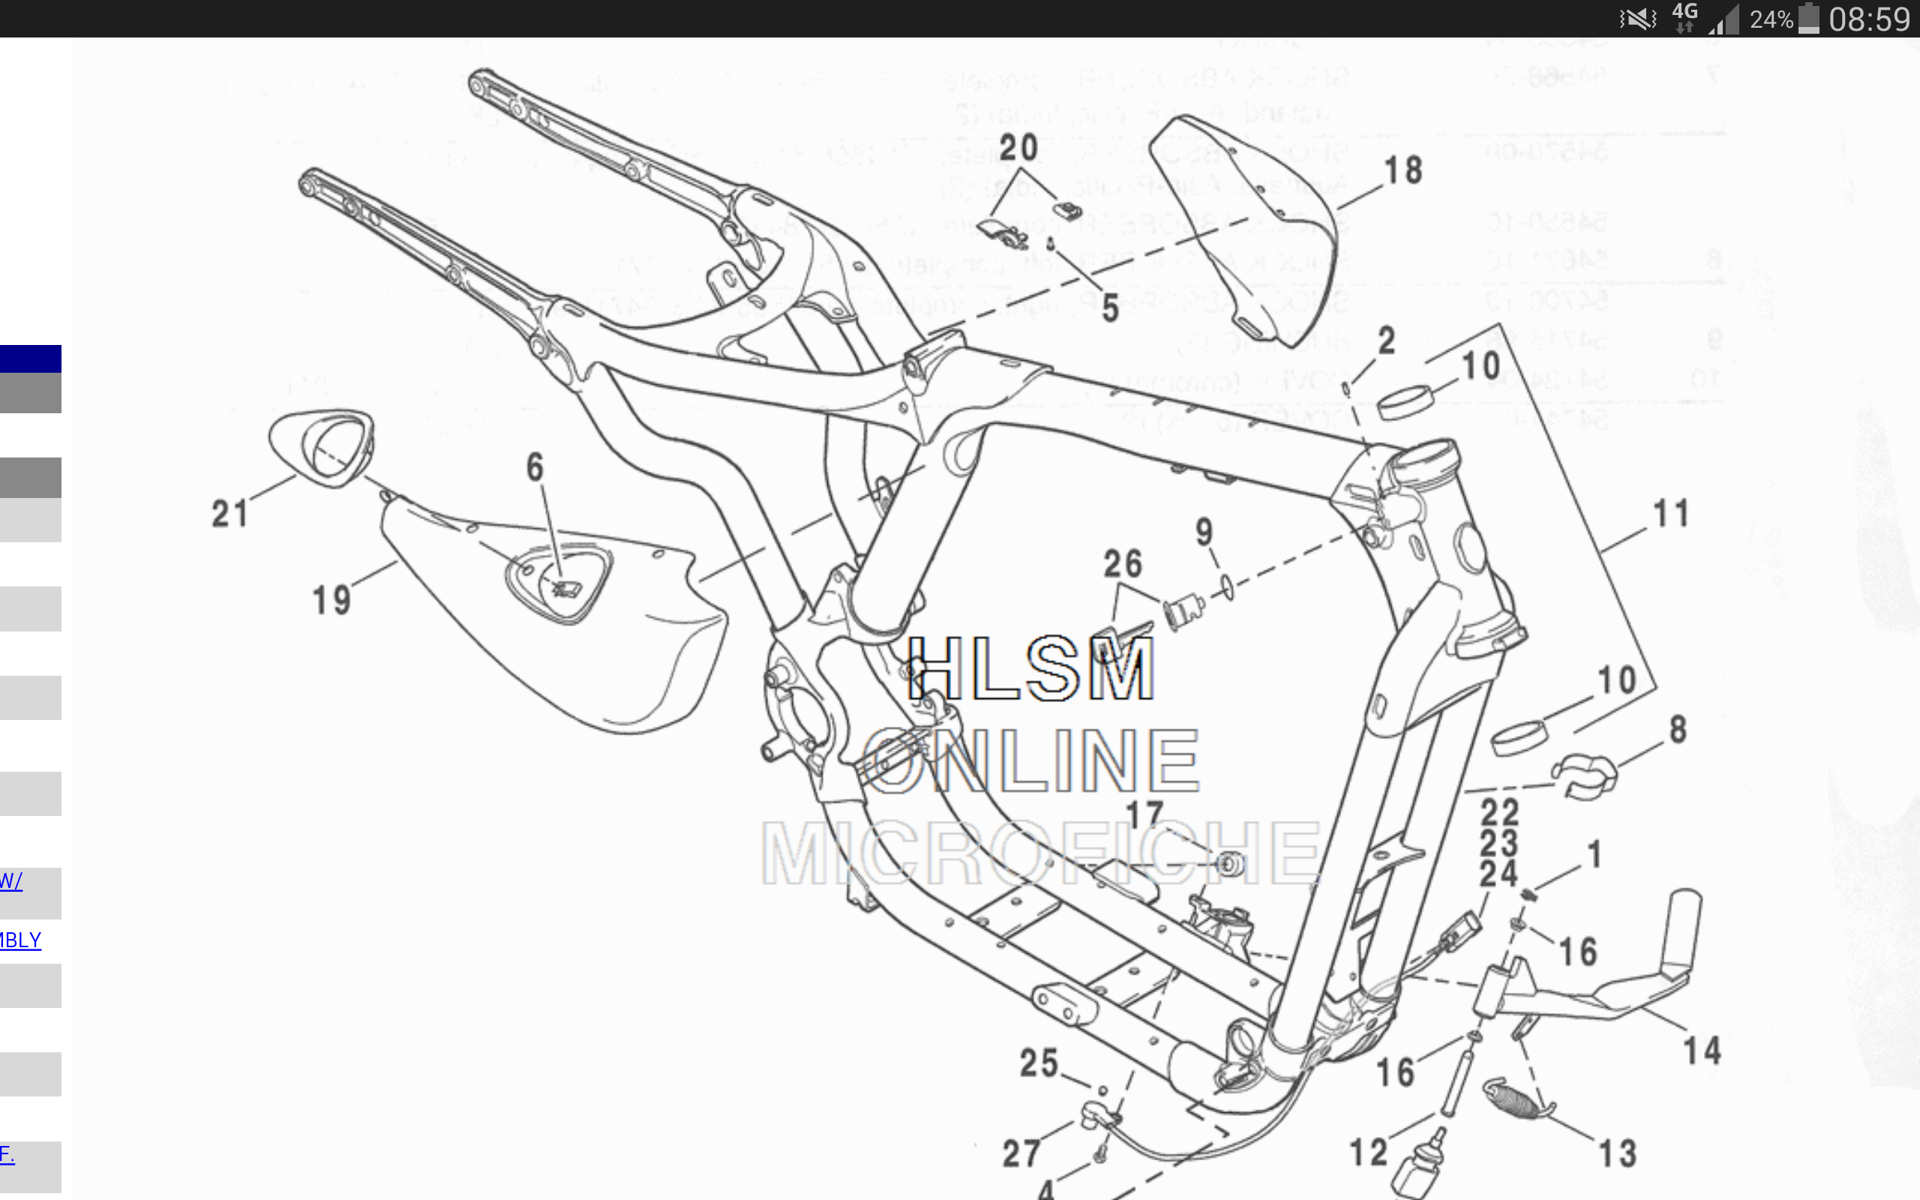 94 Sportster Wiring Diagram furthermore Harley Davidson Fairing Diagram as well 1154244 1984 Softail Basketcase additionally Harley Sportster Full Diagram additionally Volvo Ec25 Wiring Diagram. on 2013 harley davidson 883 sportster